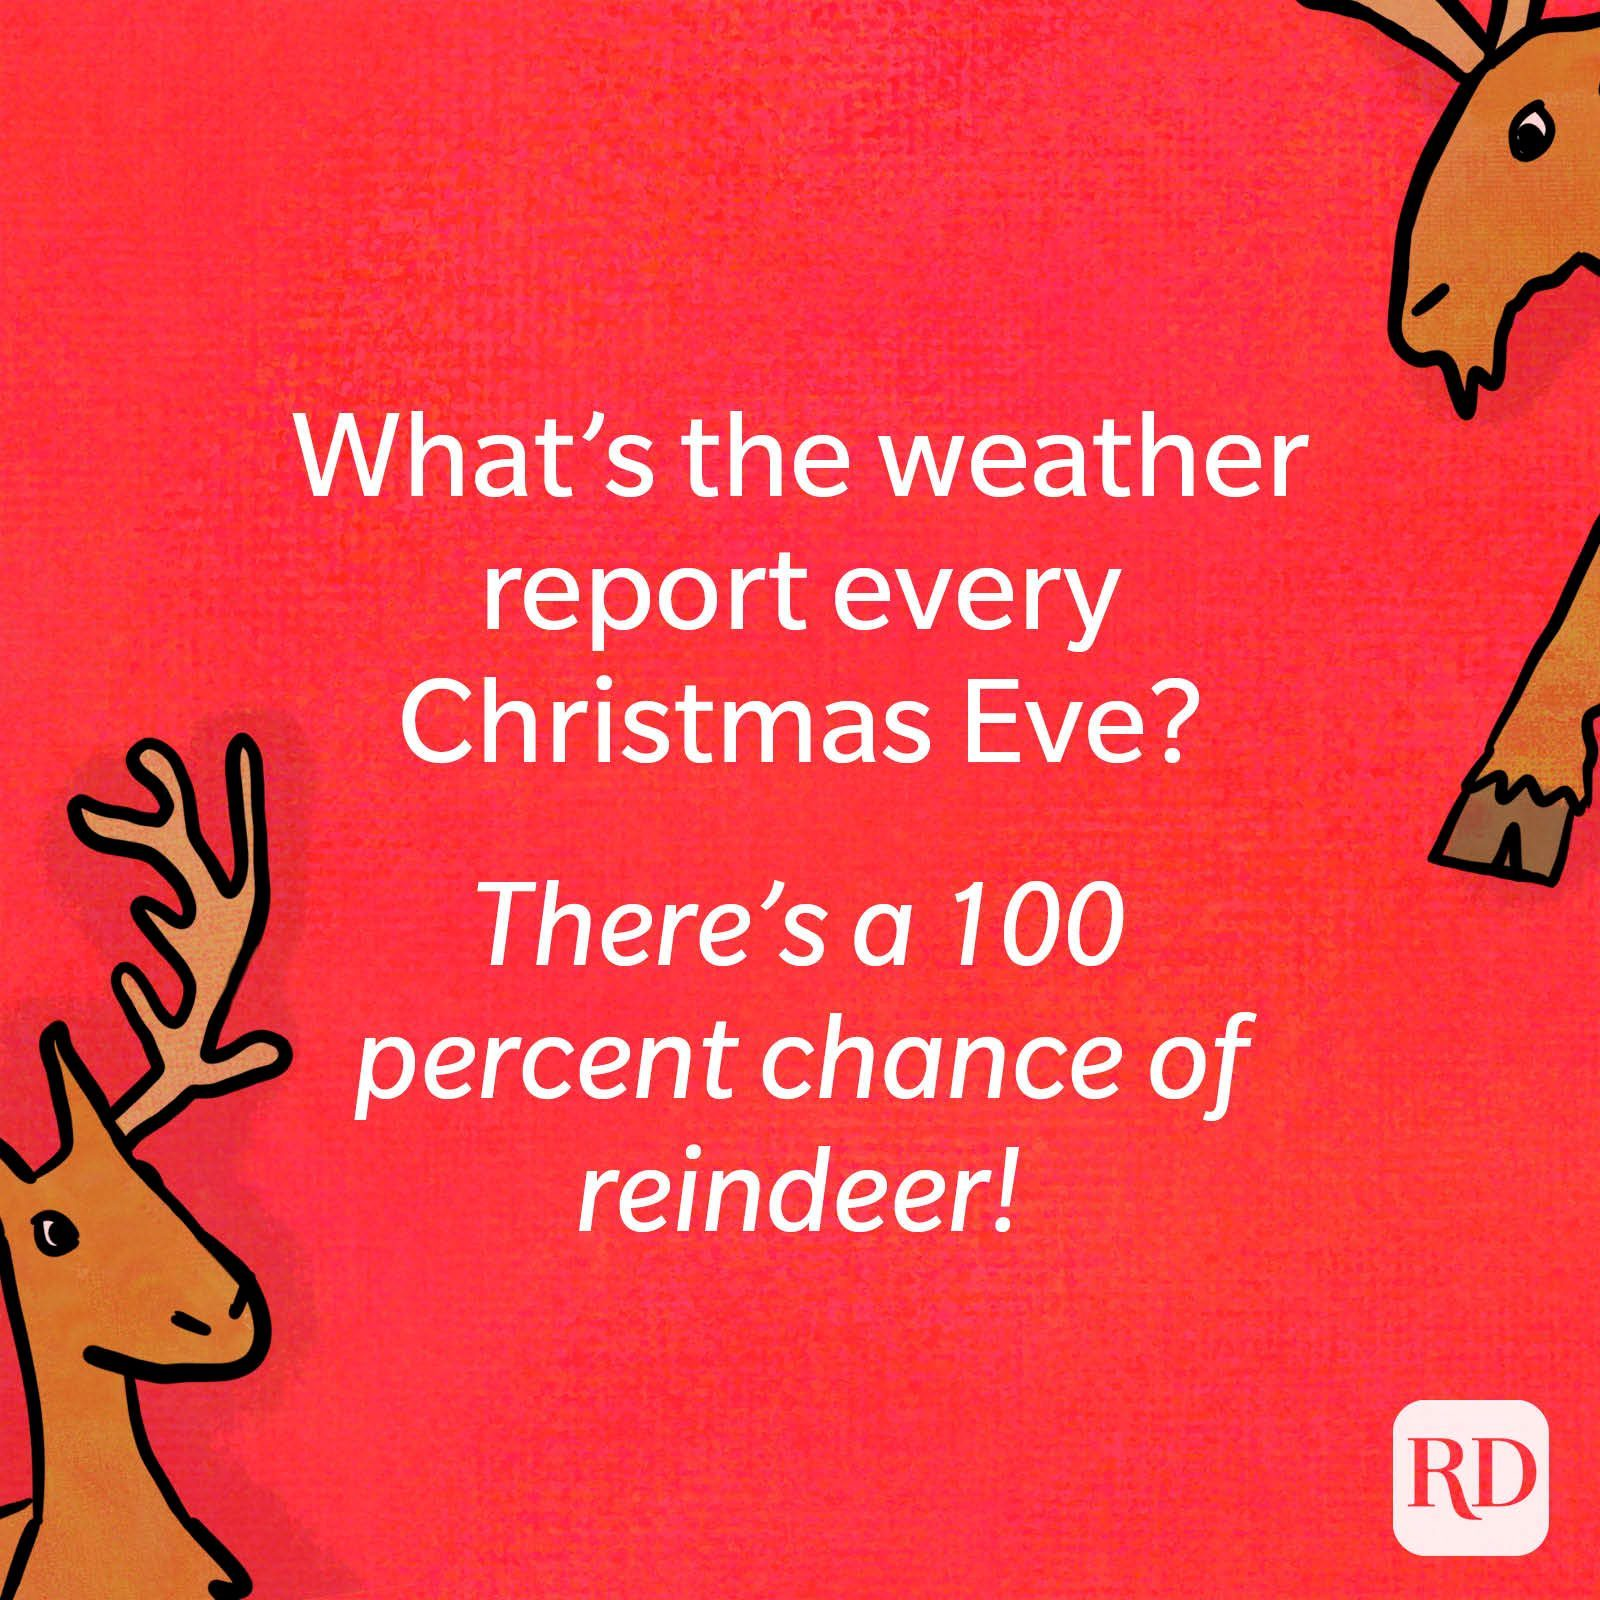 What's the weather report every Christmas Eve? There's a 100 percent chance of reindeer!